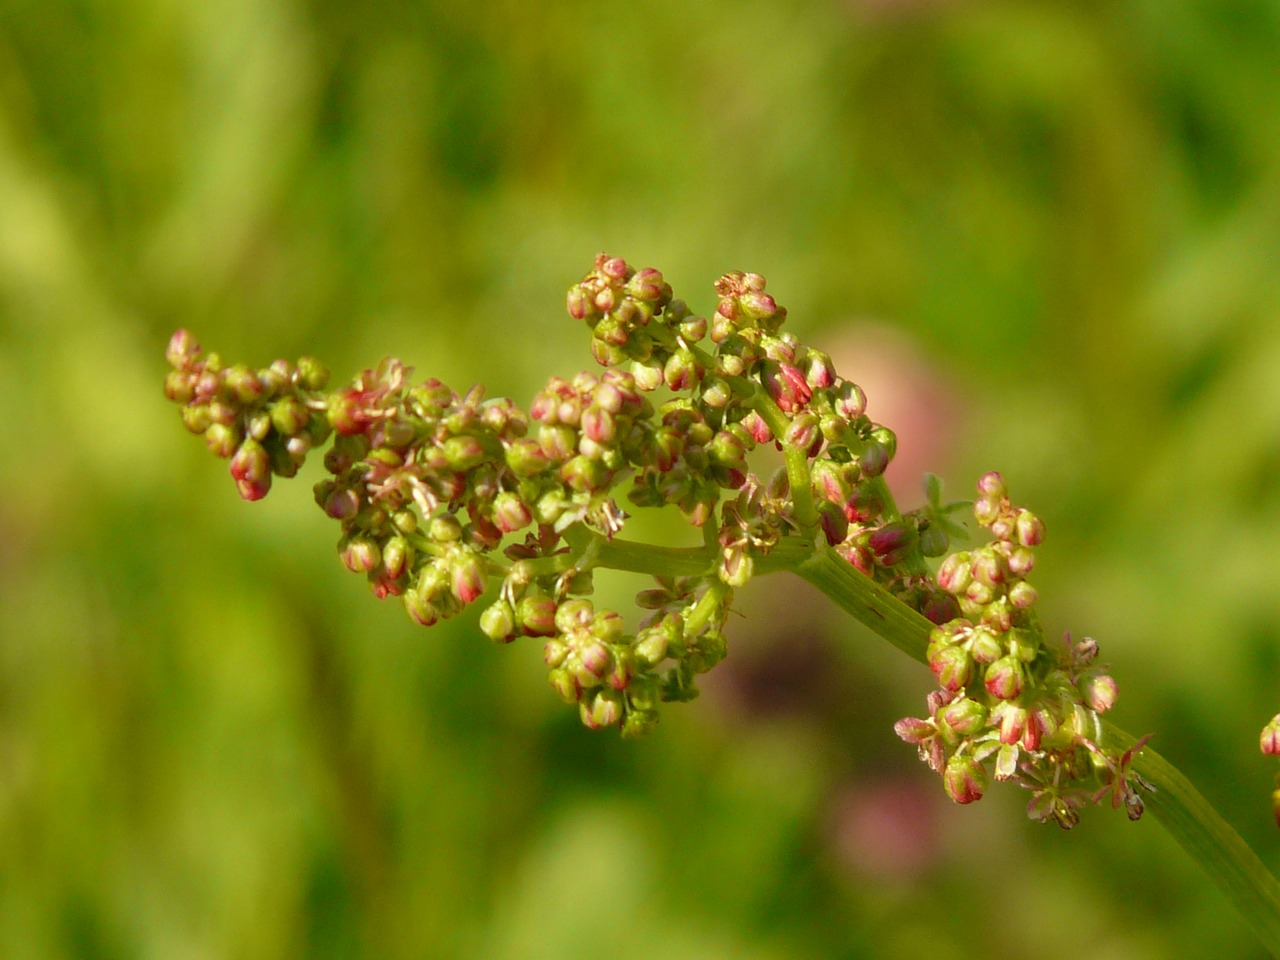 meadows sauerampfer plant inflorescence free photo